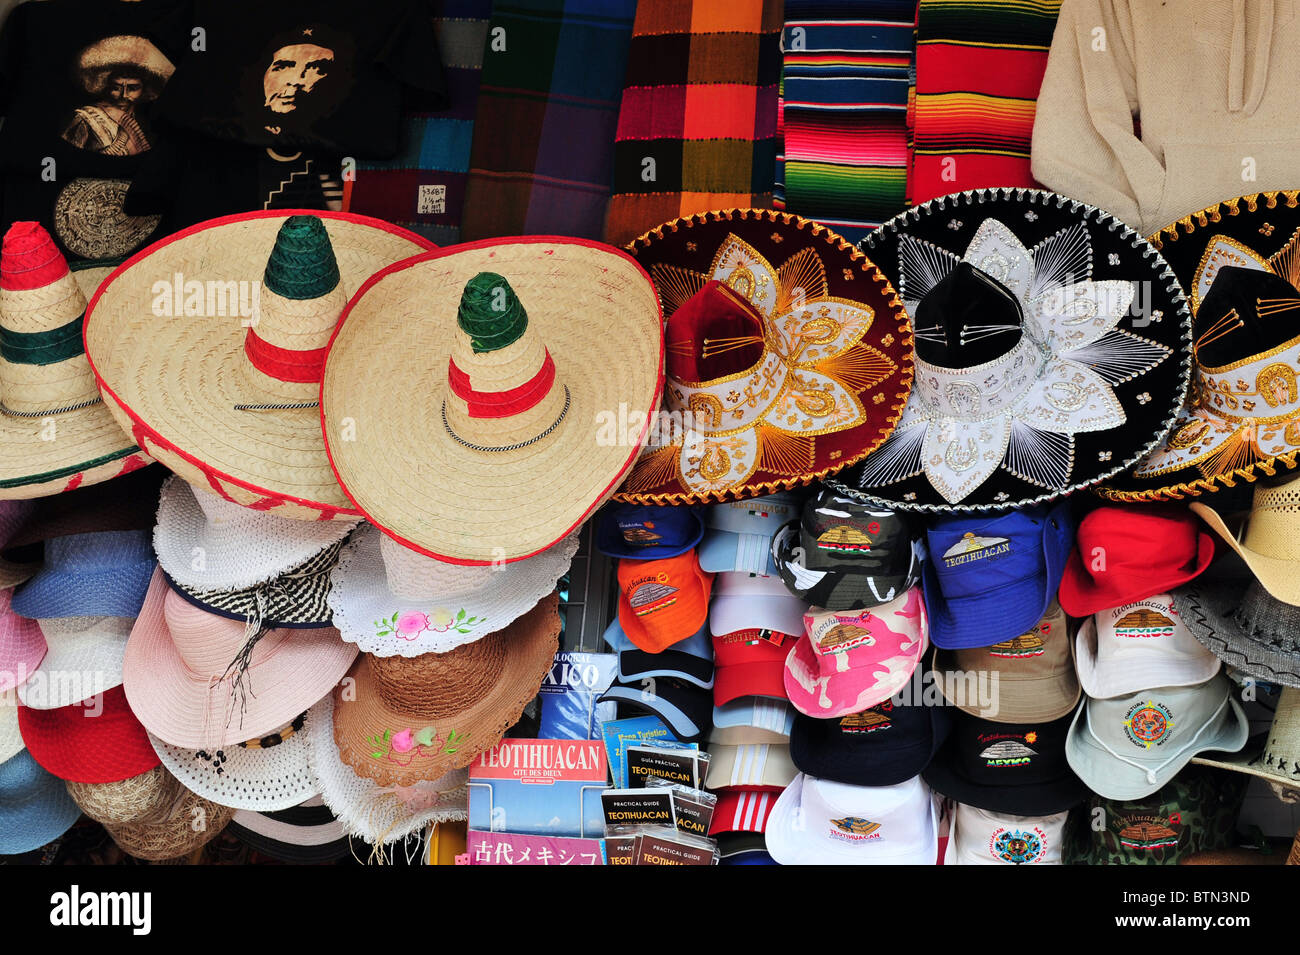 Sombreros and cowboy hat in Mexican hat shop Stock Photo  32426057 ... 7165d74f6c0